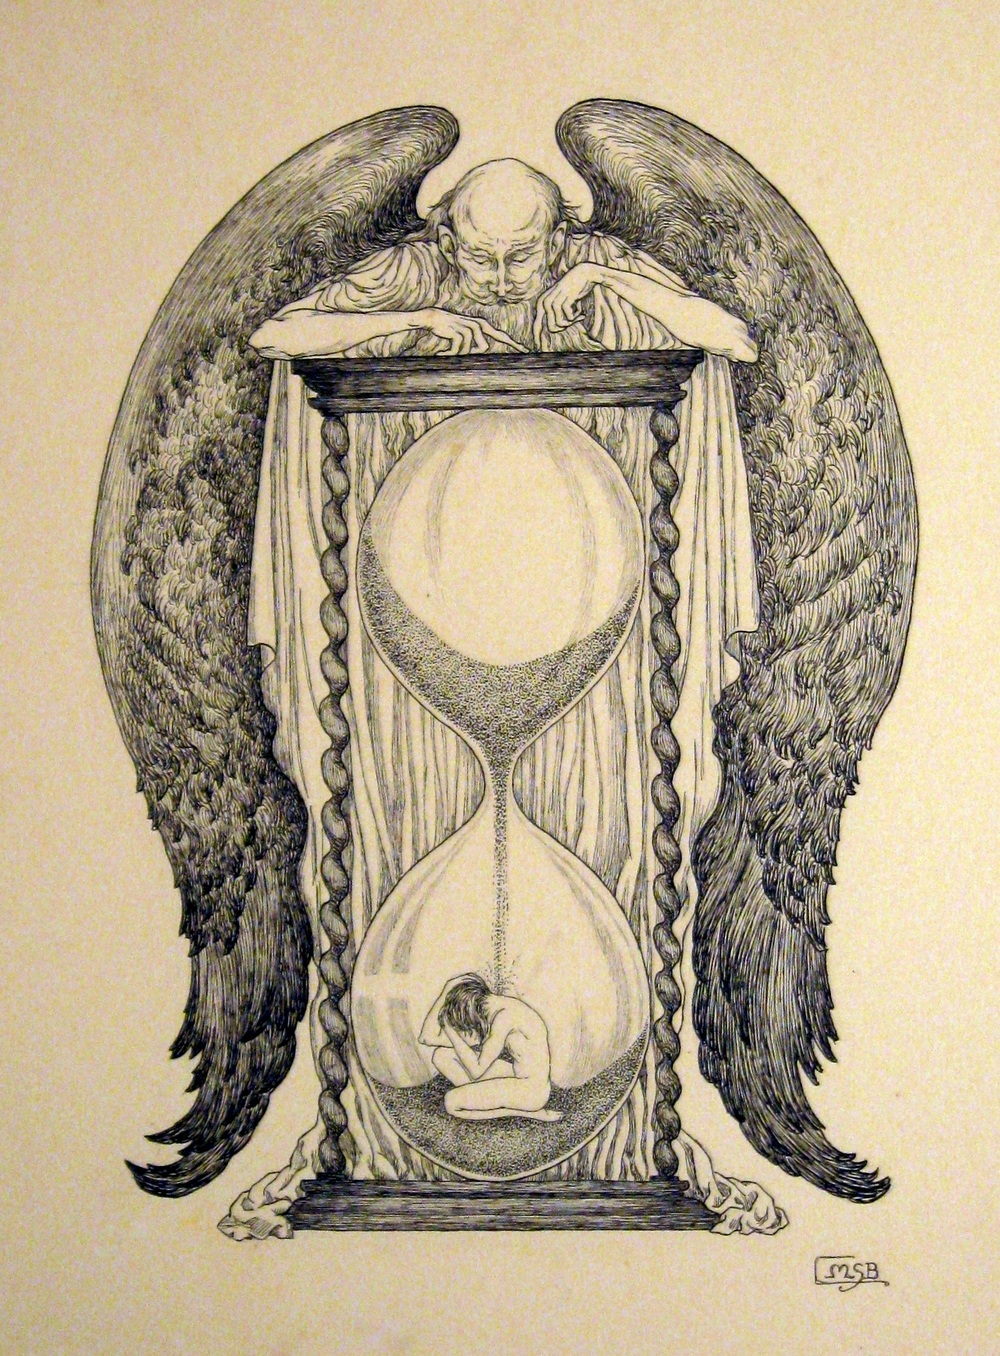 MSB, Mere Passing of Minutes, an illustration for an essay on time. c. 1940's